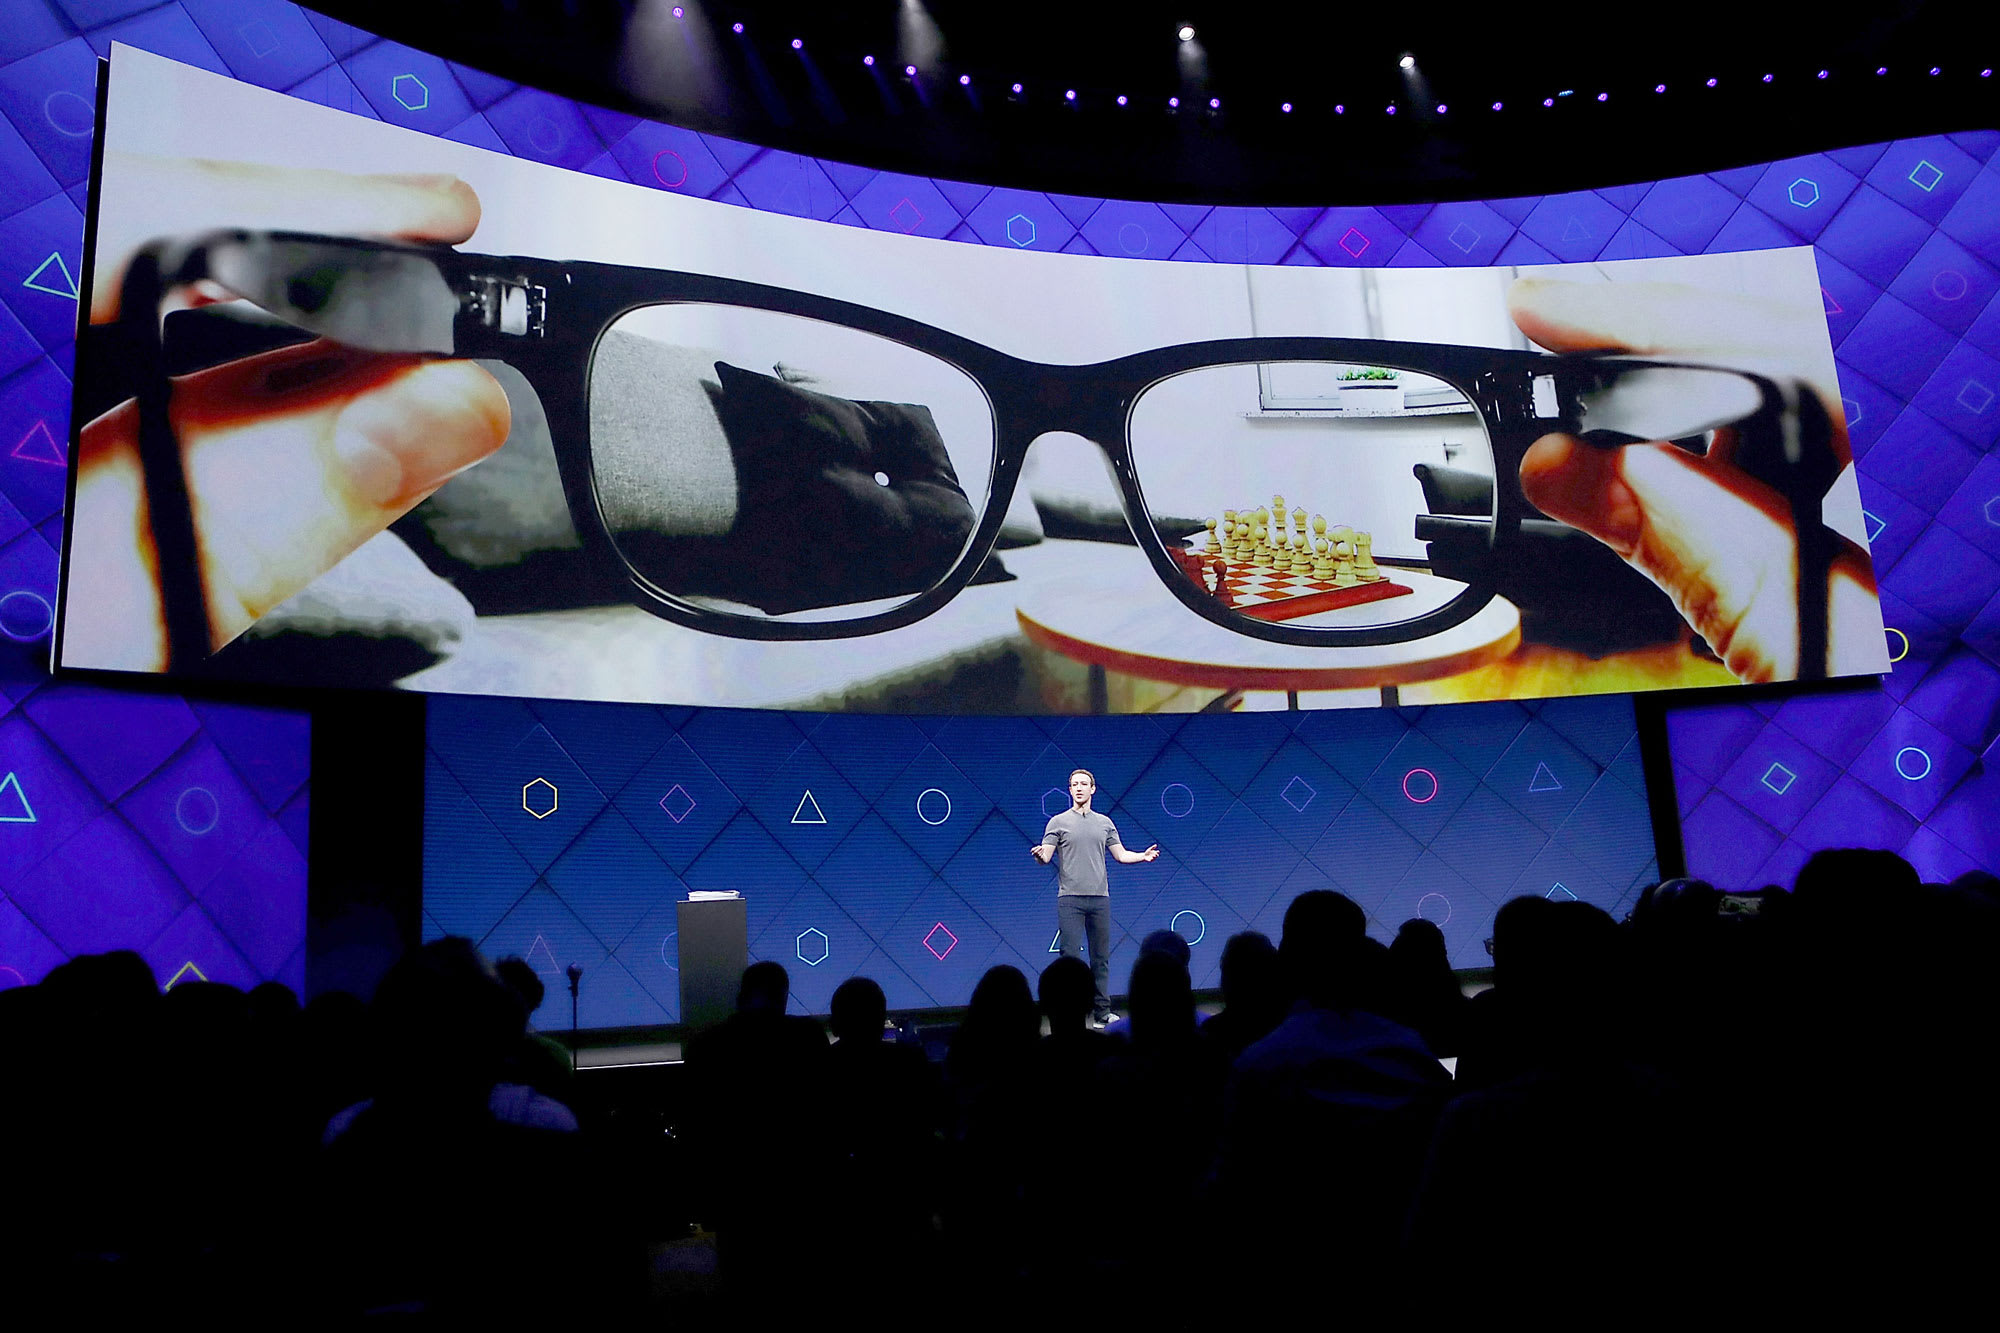 Facebook smart glasses coming in 2021